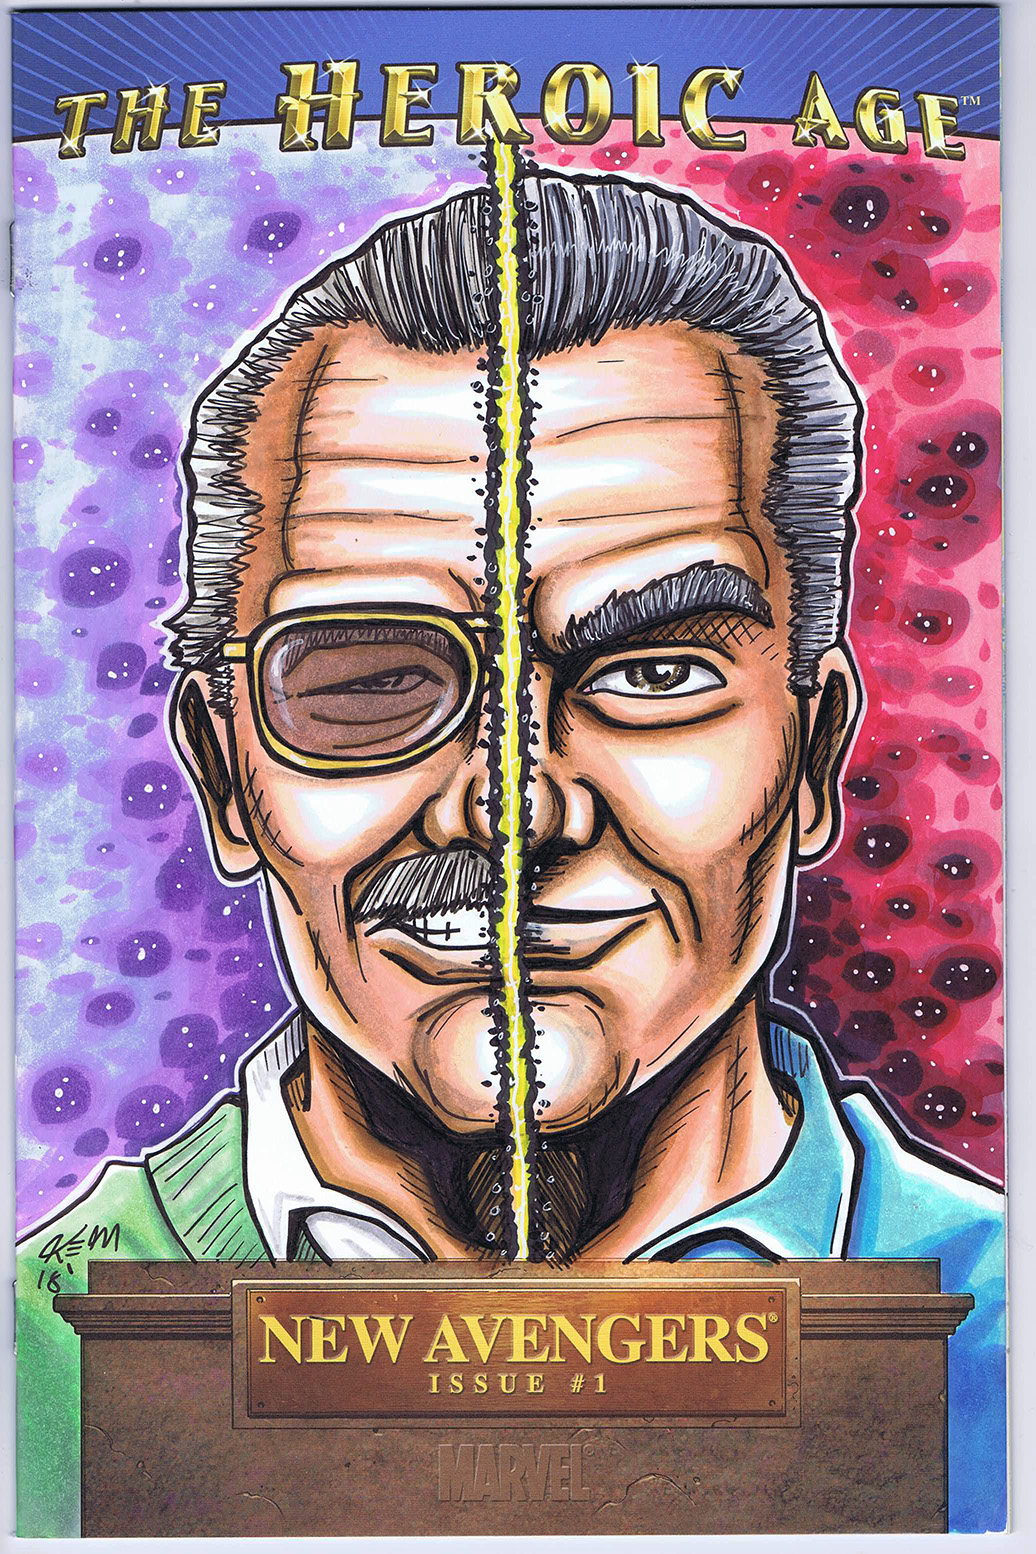 STAN LEE JACK KIRBY SKETCH COVER